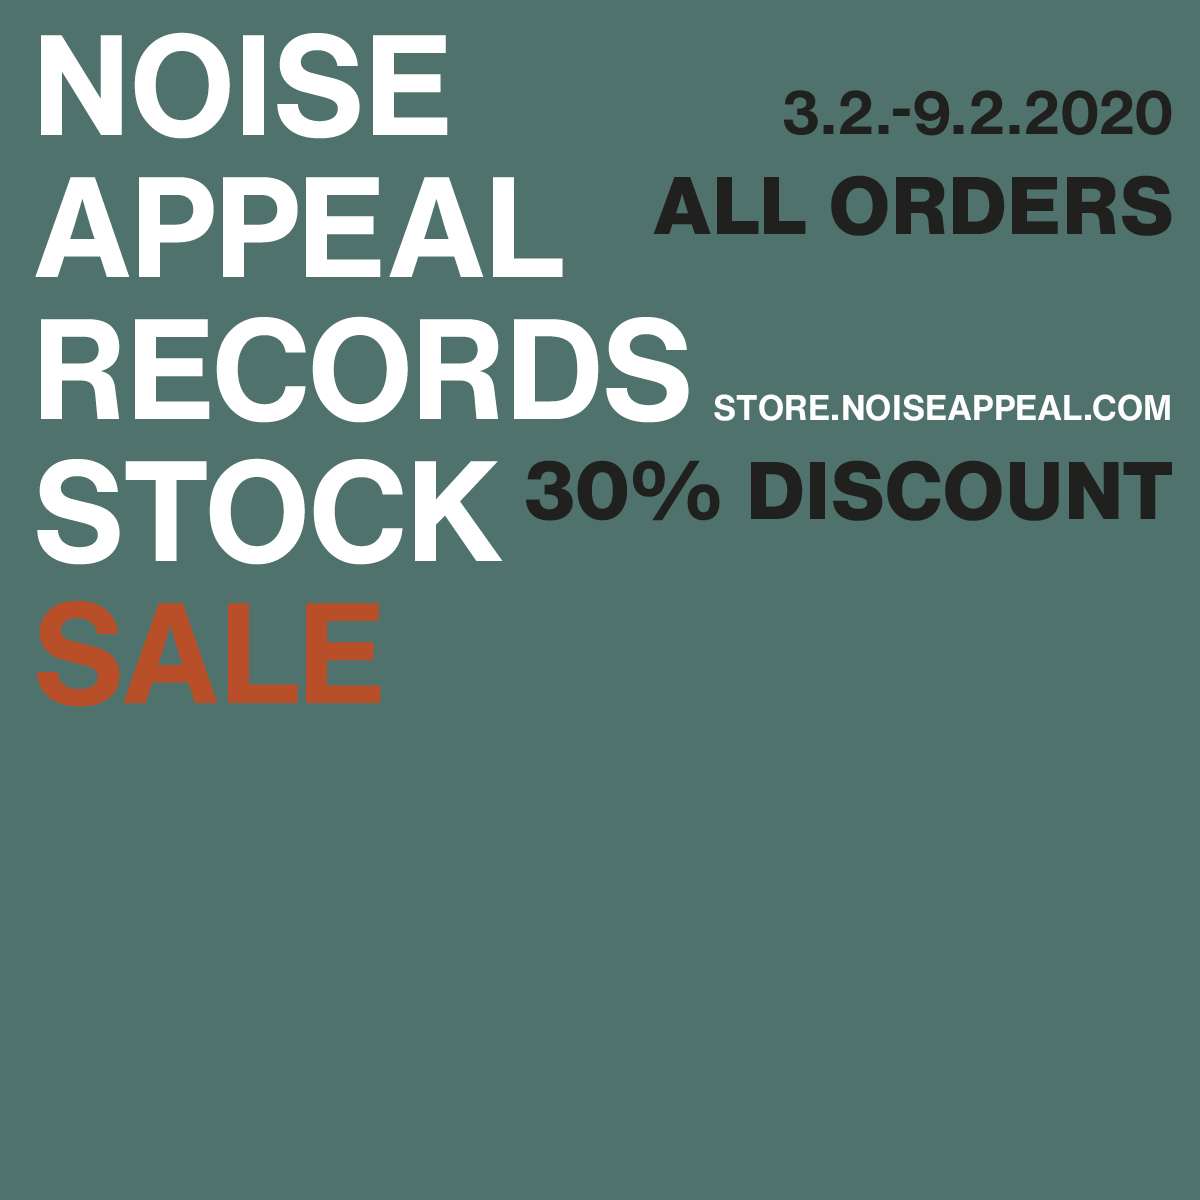 Noise Appeal Records Stock Sale February 2020